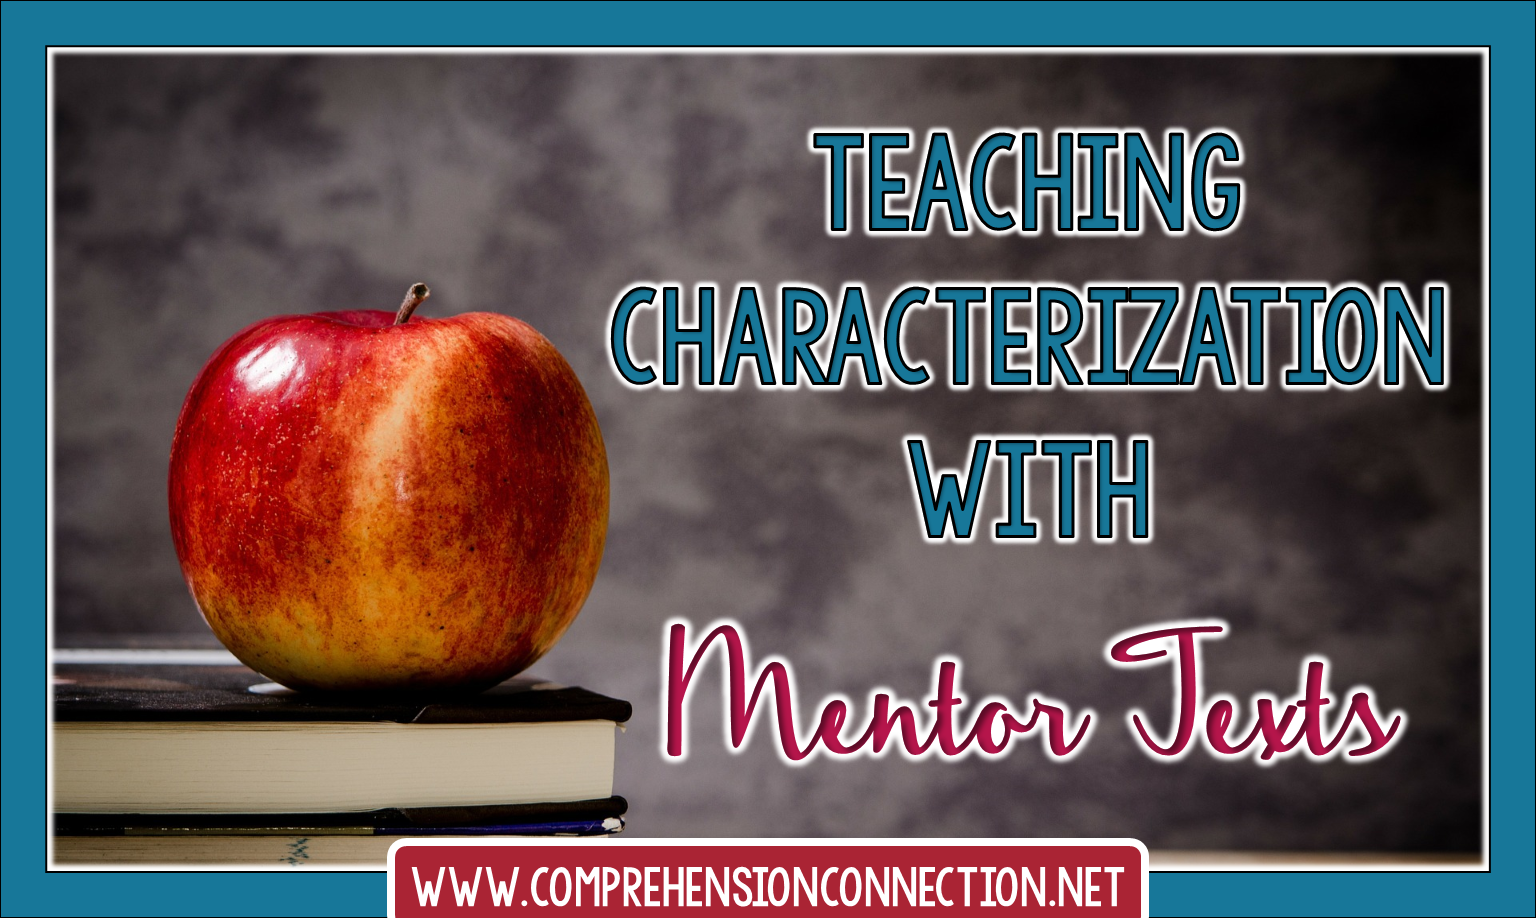 Character development is one of the trademarks of a great book. If readers connect with the main character, the plot is that much more engaging. Check out this post for characterization mentor texts.